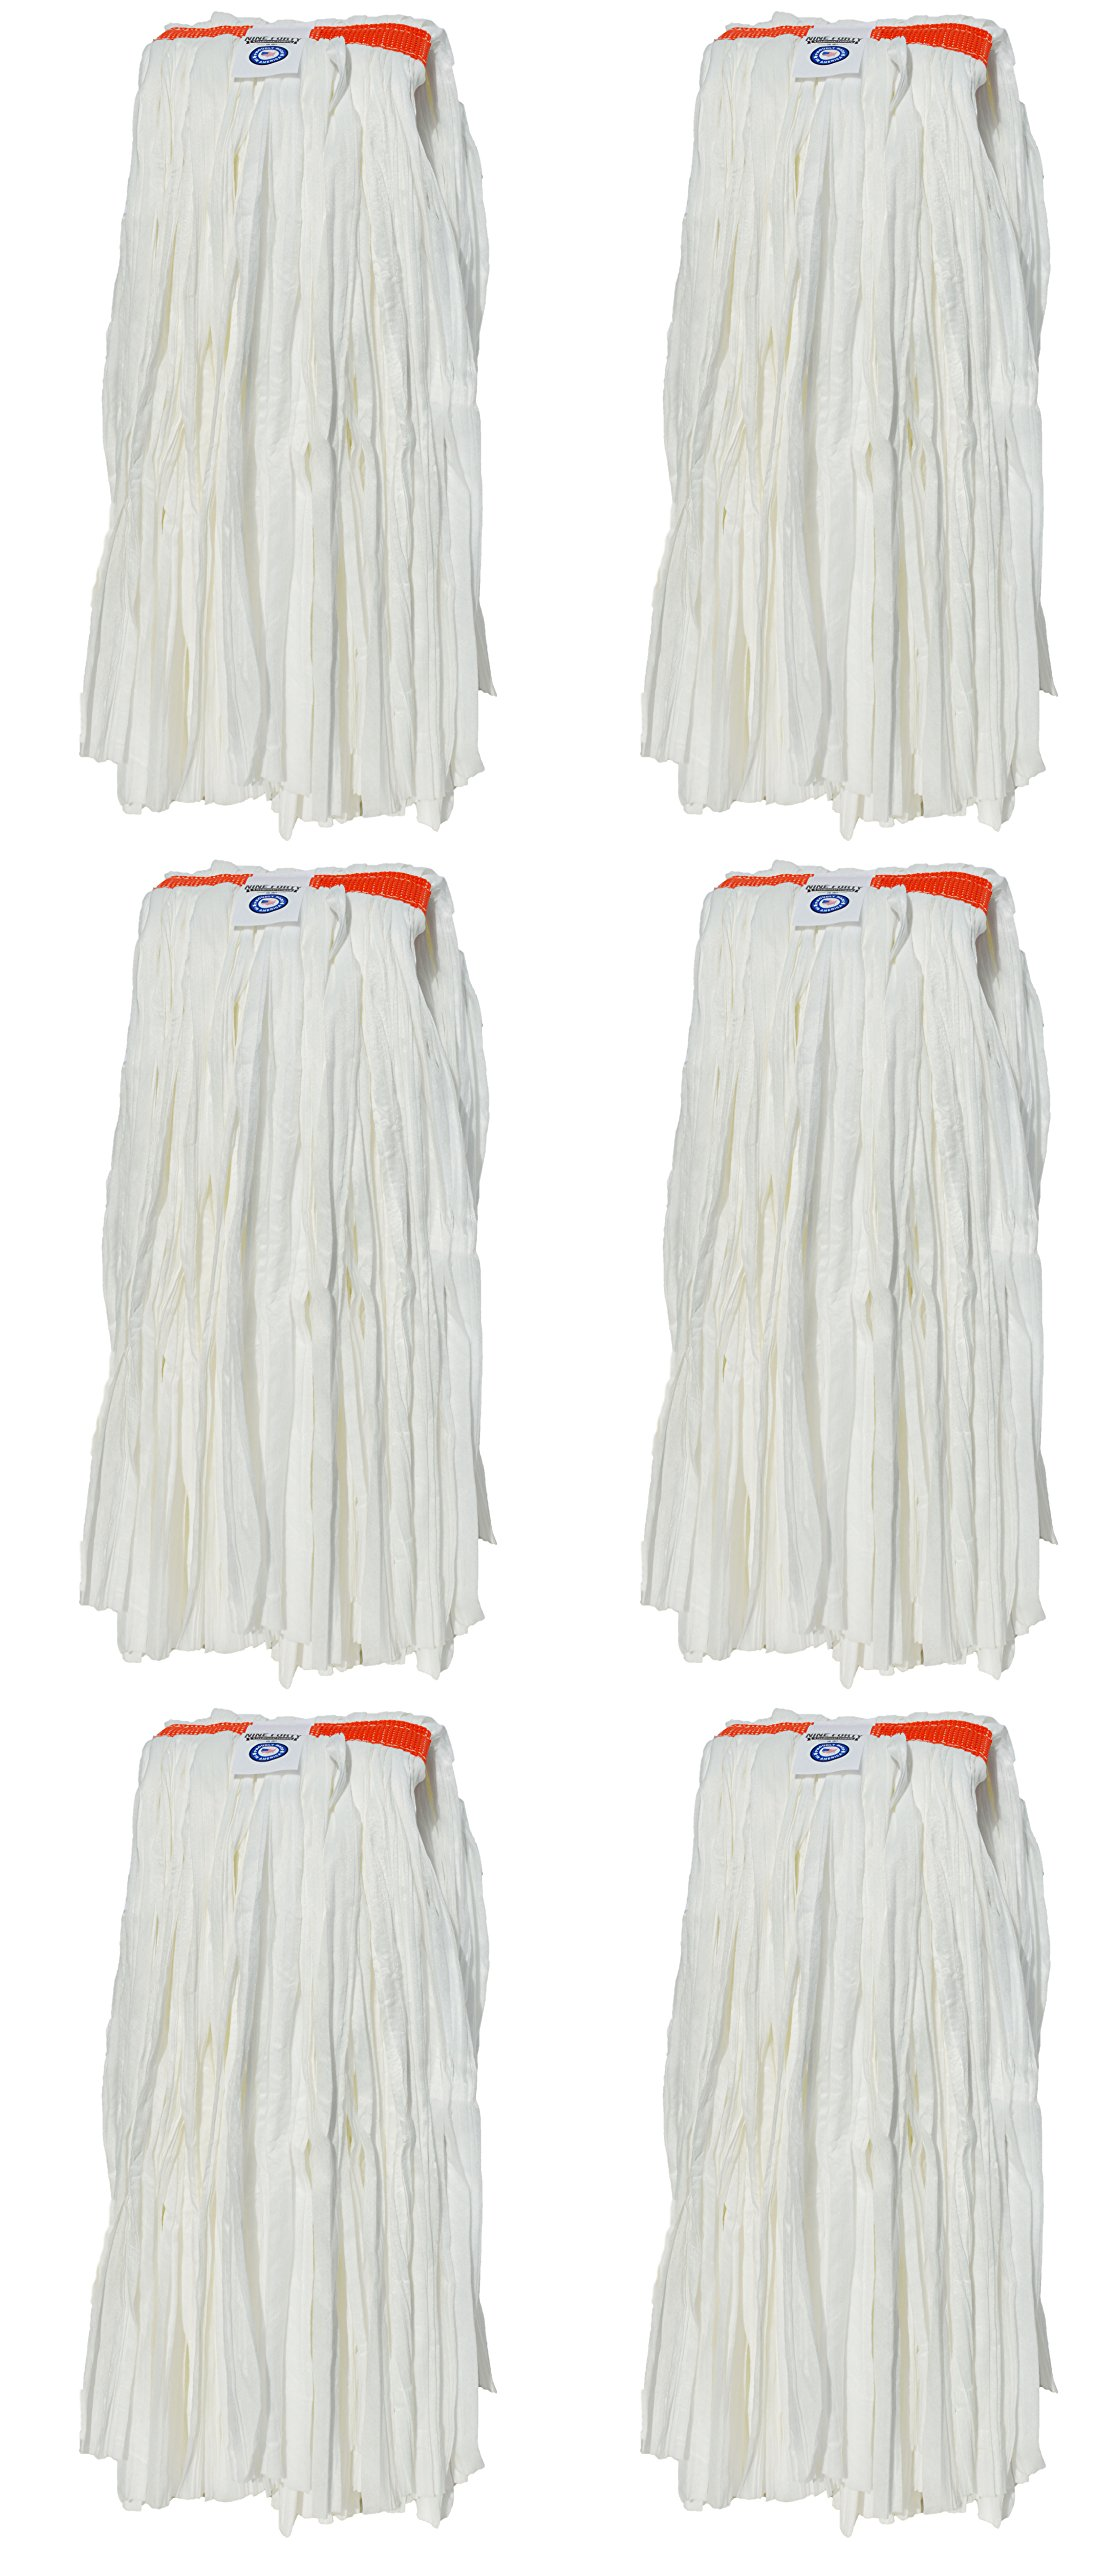 Nine Forty Commercial USA Synthetic Cut End Wet Mop Head Refill | Replacement (6 Pack, Large)